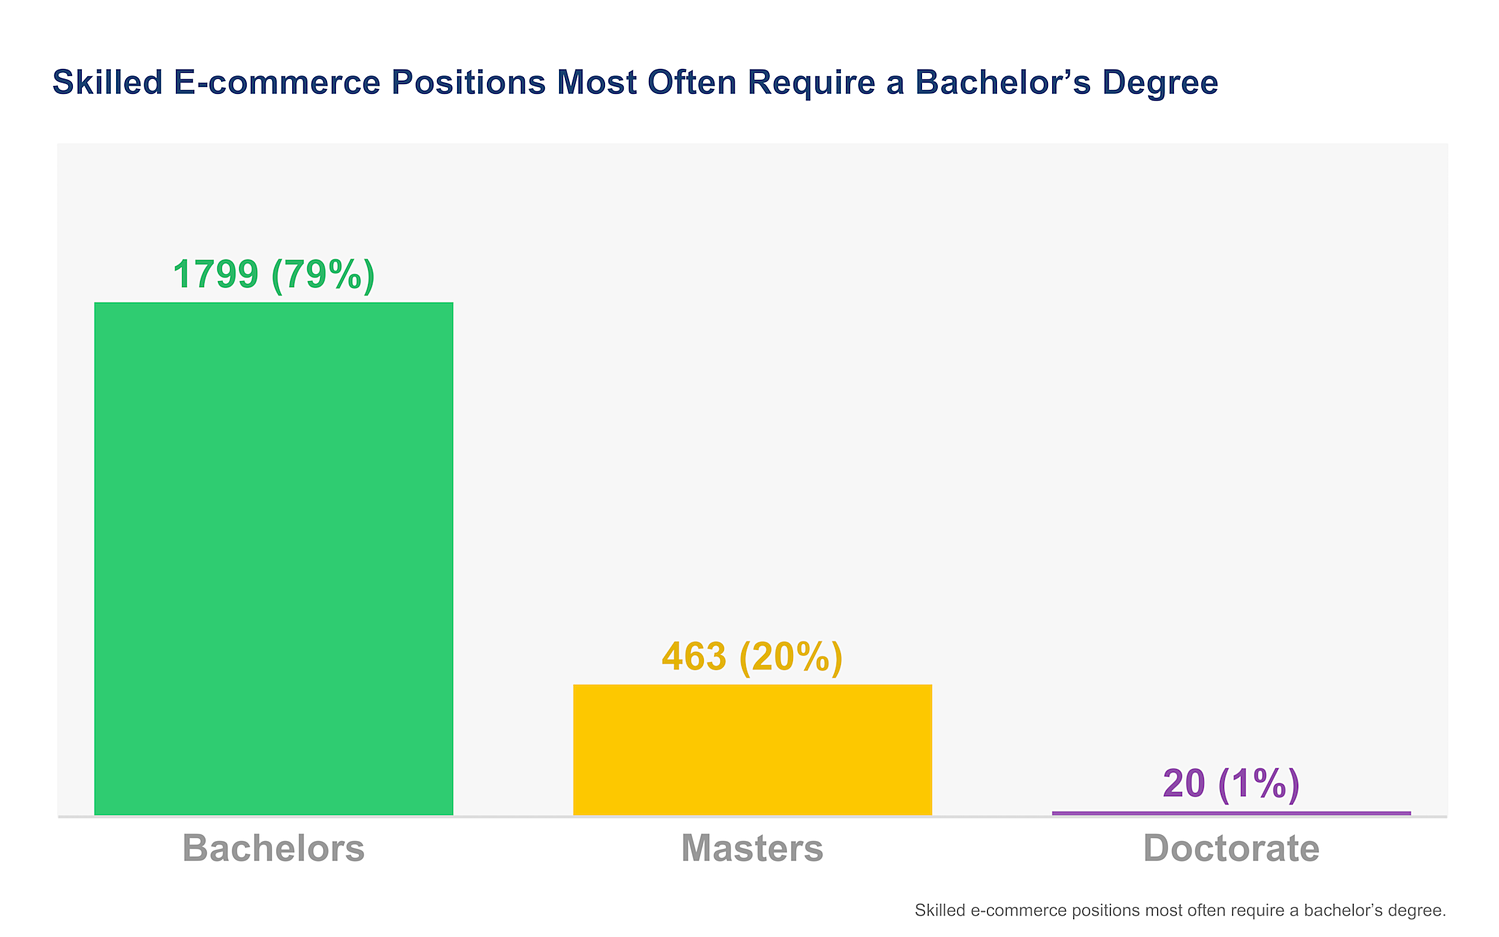 educational requirement for e-commerce positions